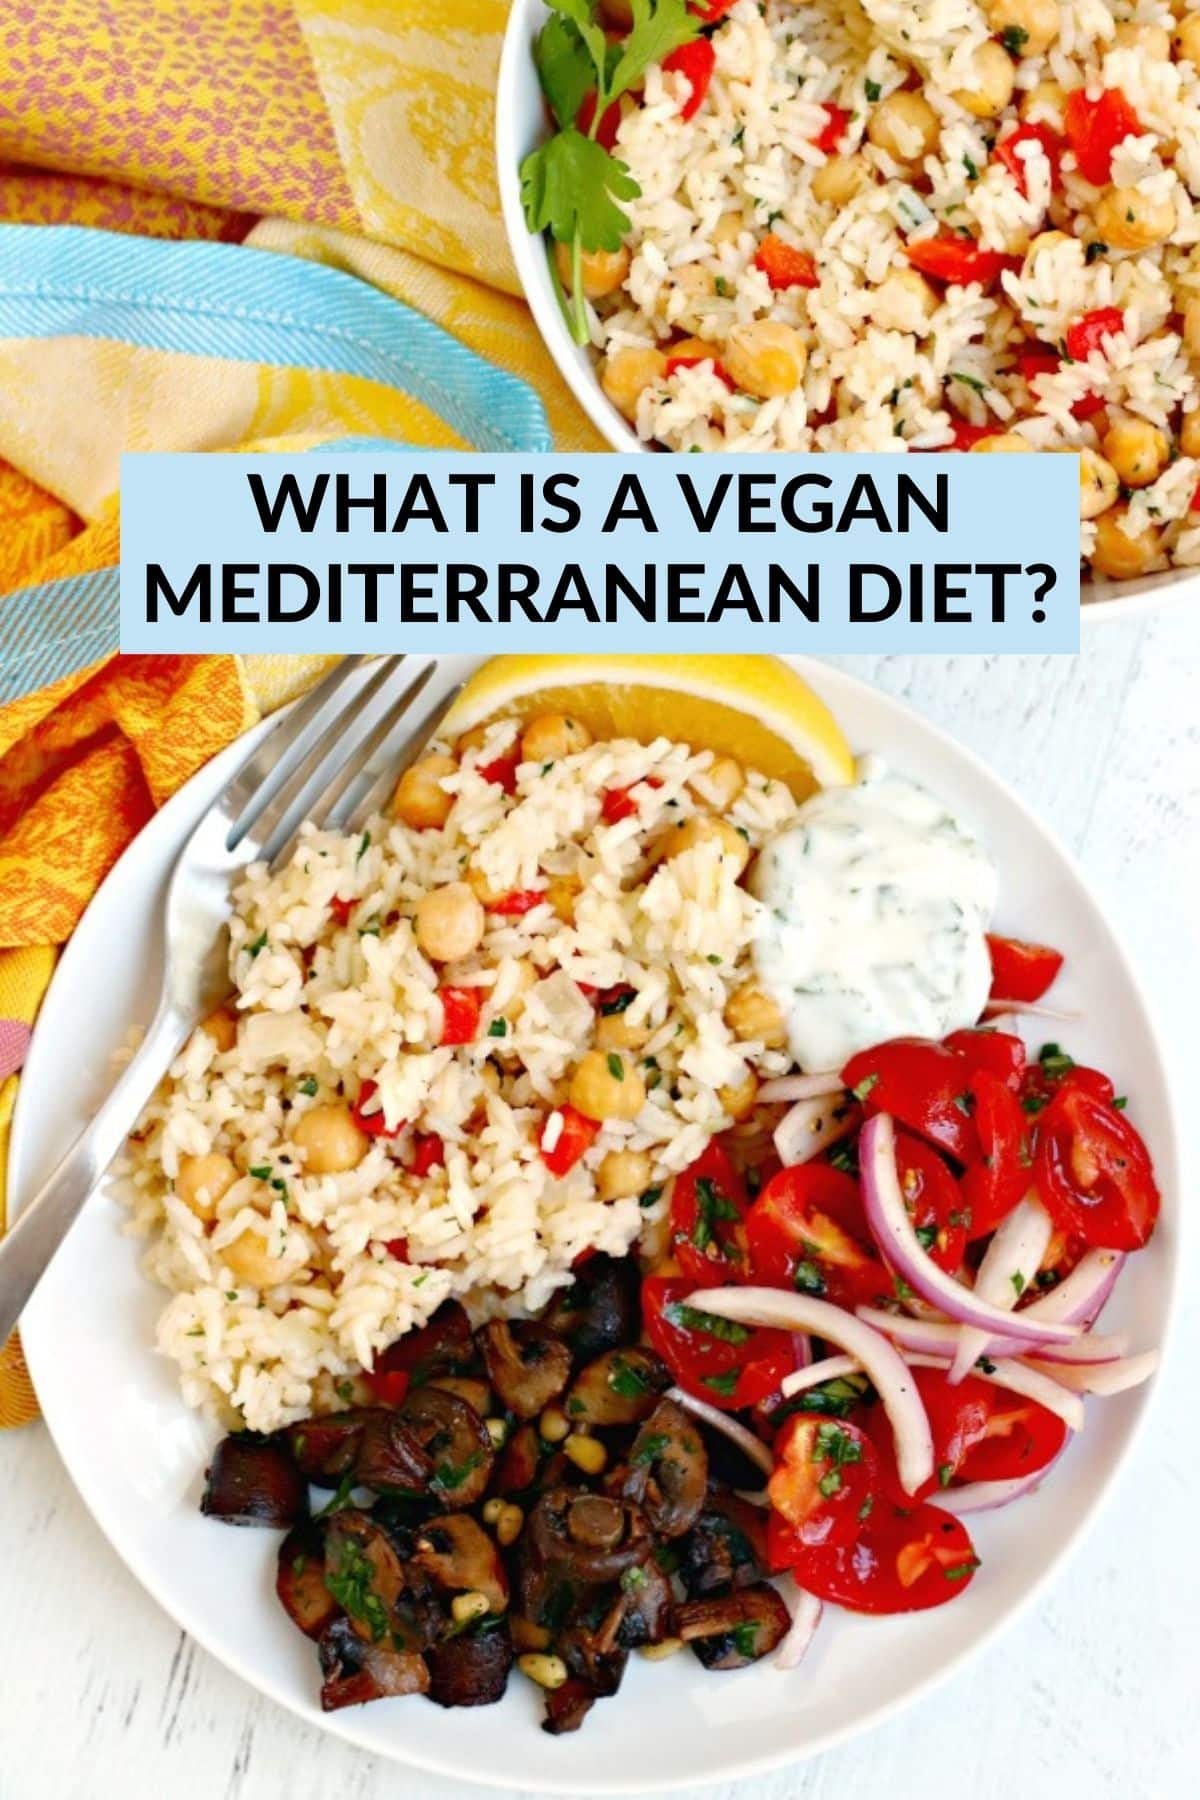 Dinner plate with rice pilaf, yogurt sauce, tomatoes and red onions, and roasted mushrooms,